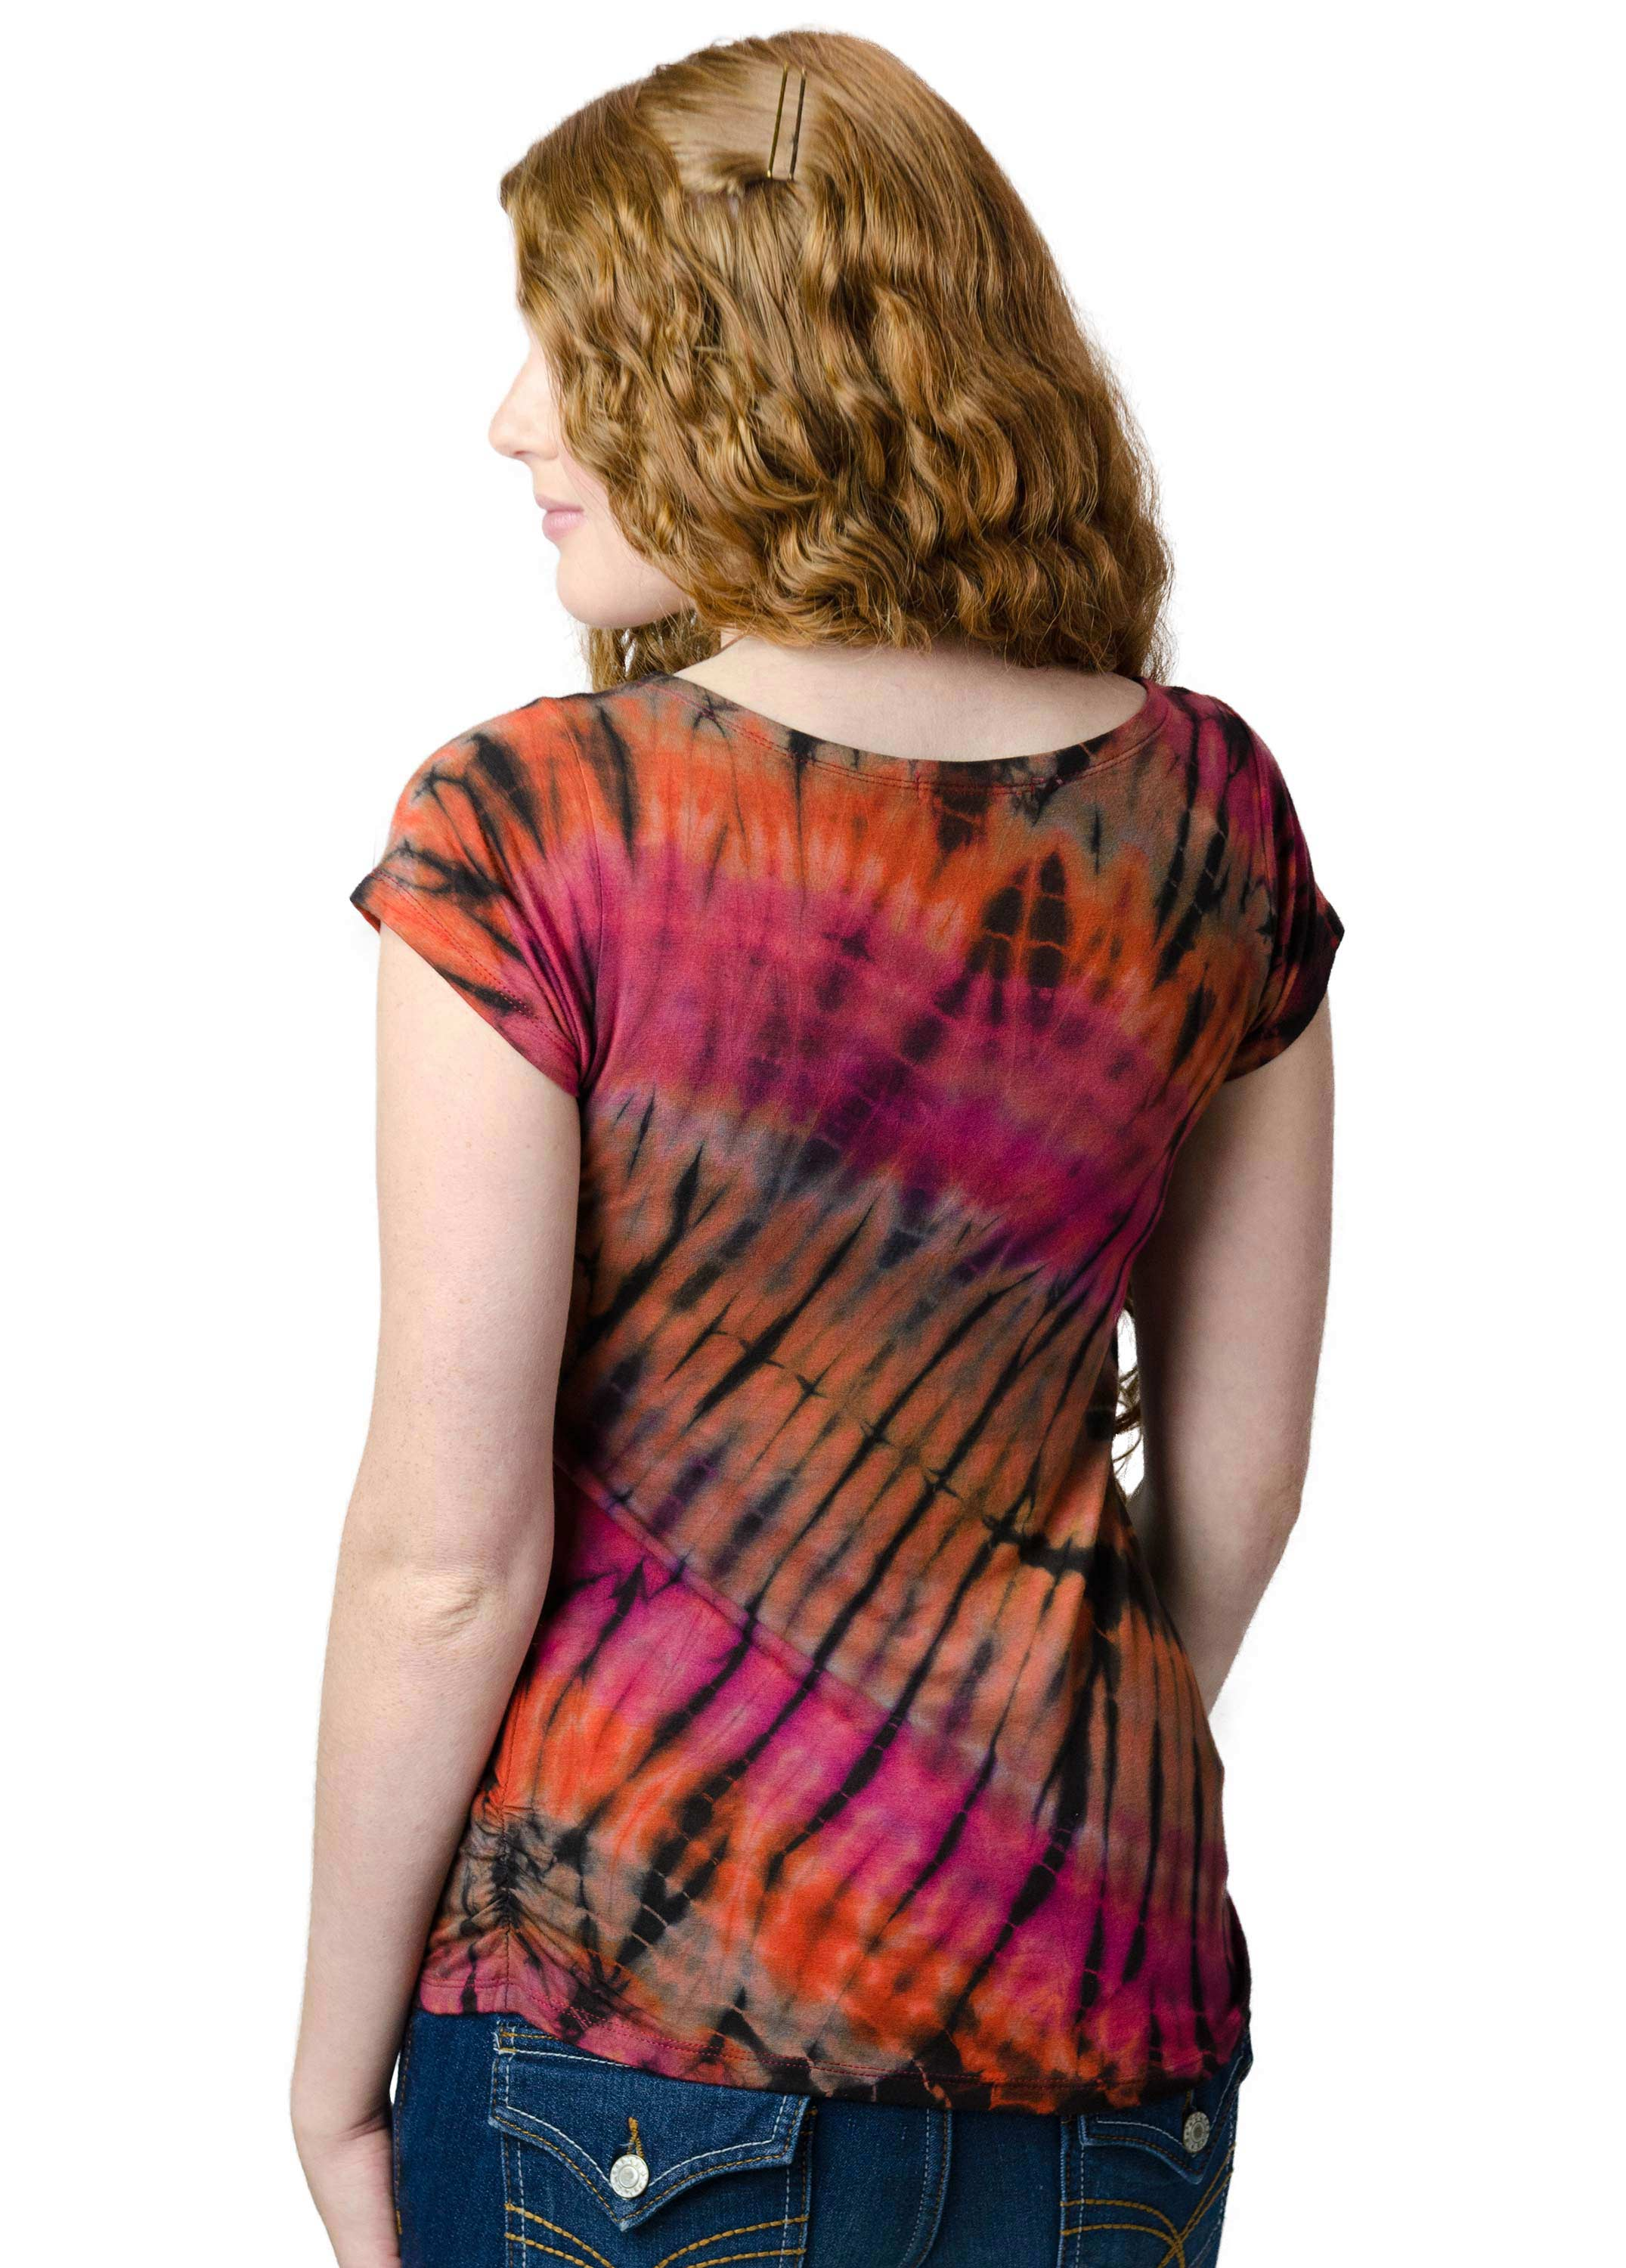 Short Sleeve V-neck Tee Hand Painted Tie Dye - Red Orange Multi